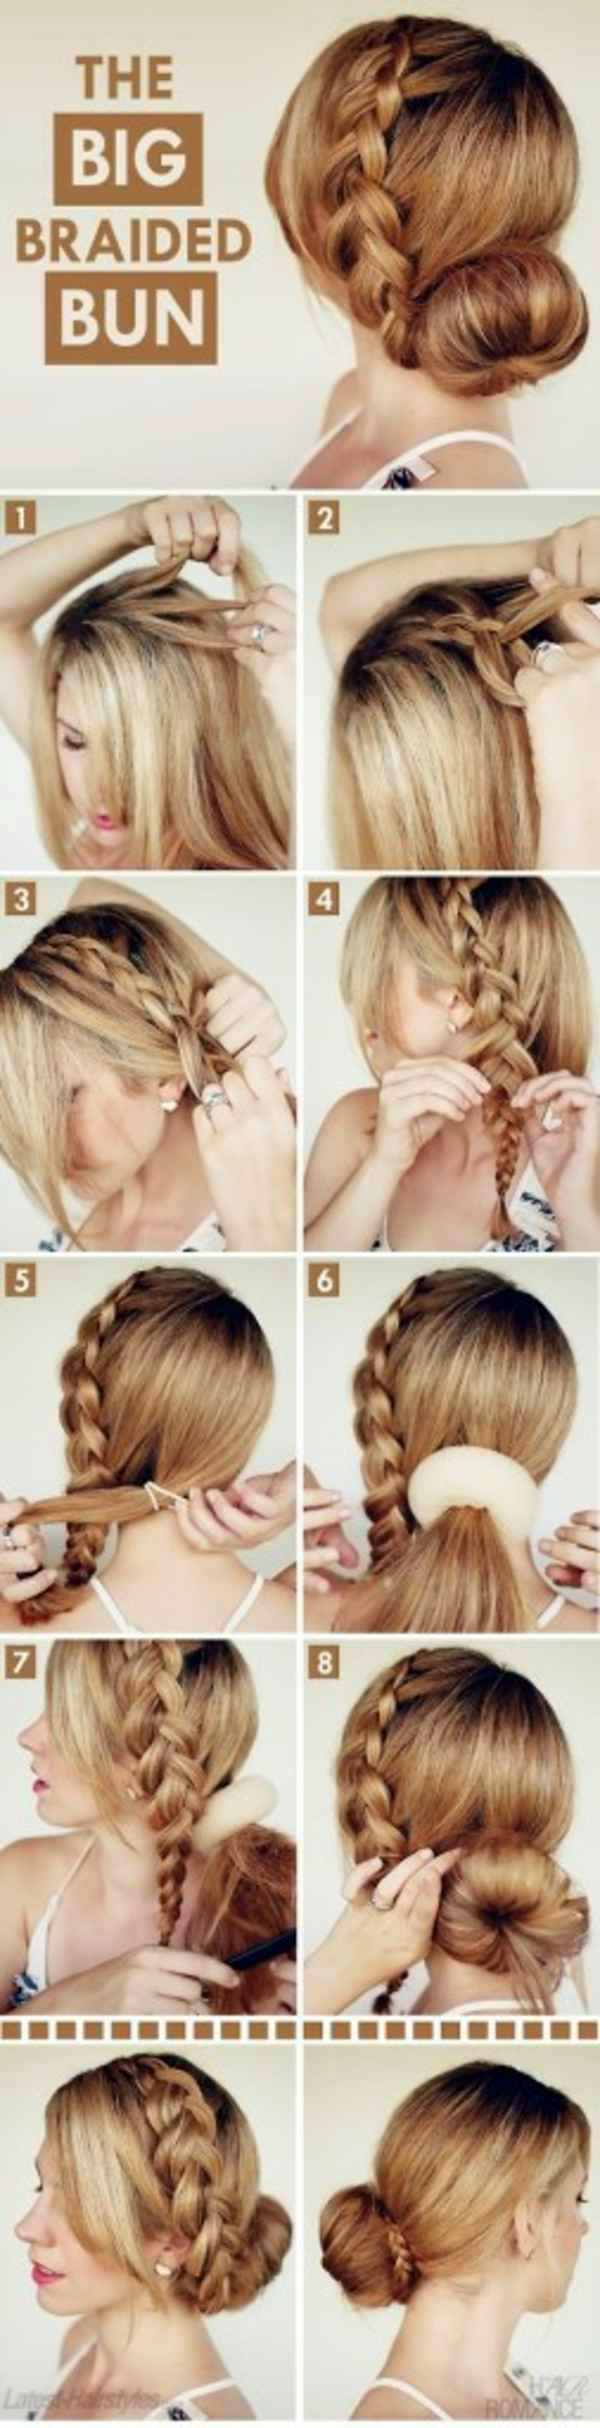 Admirable Quick And Easy Going Diy Trendy Hairstyles Interior Design Ideas Hairstyles For Women Draintrainus